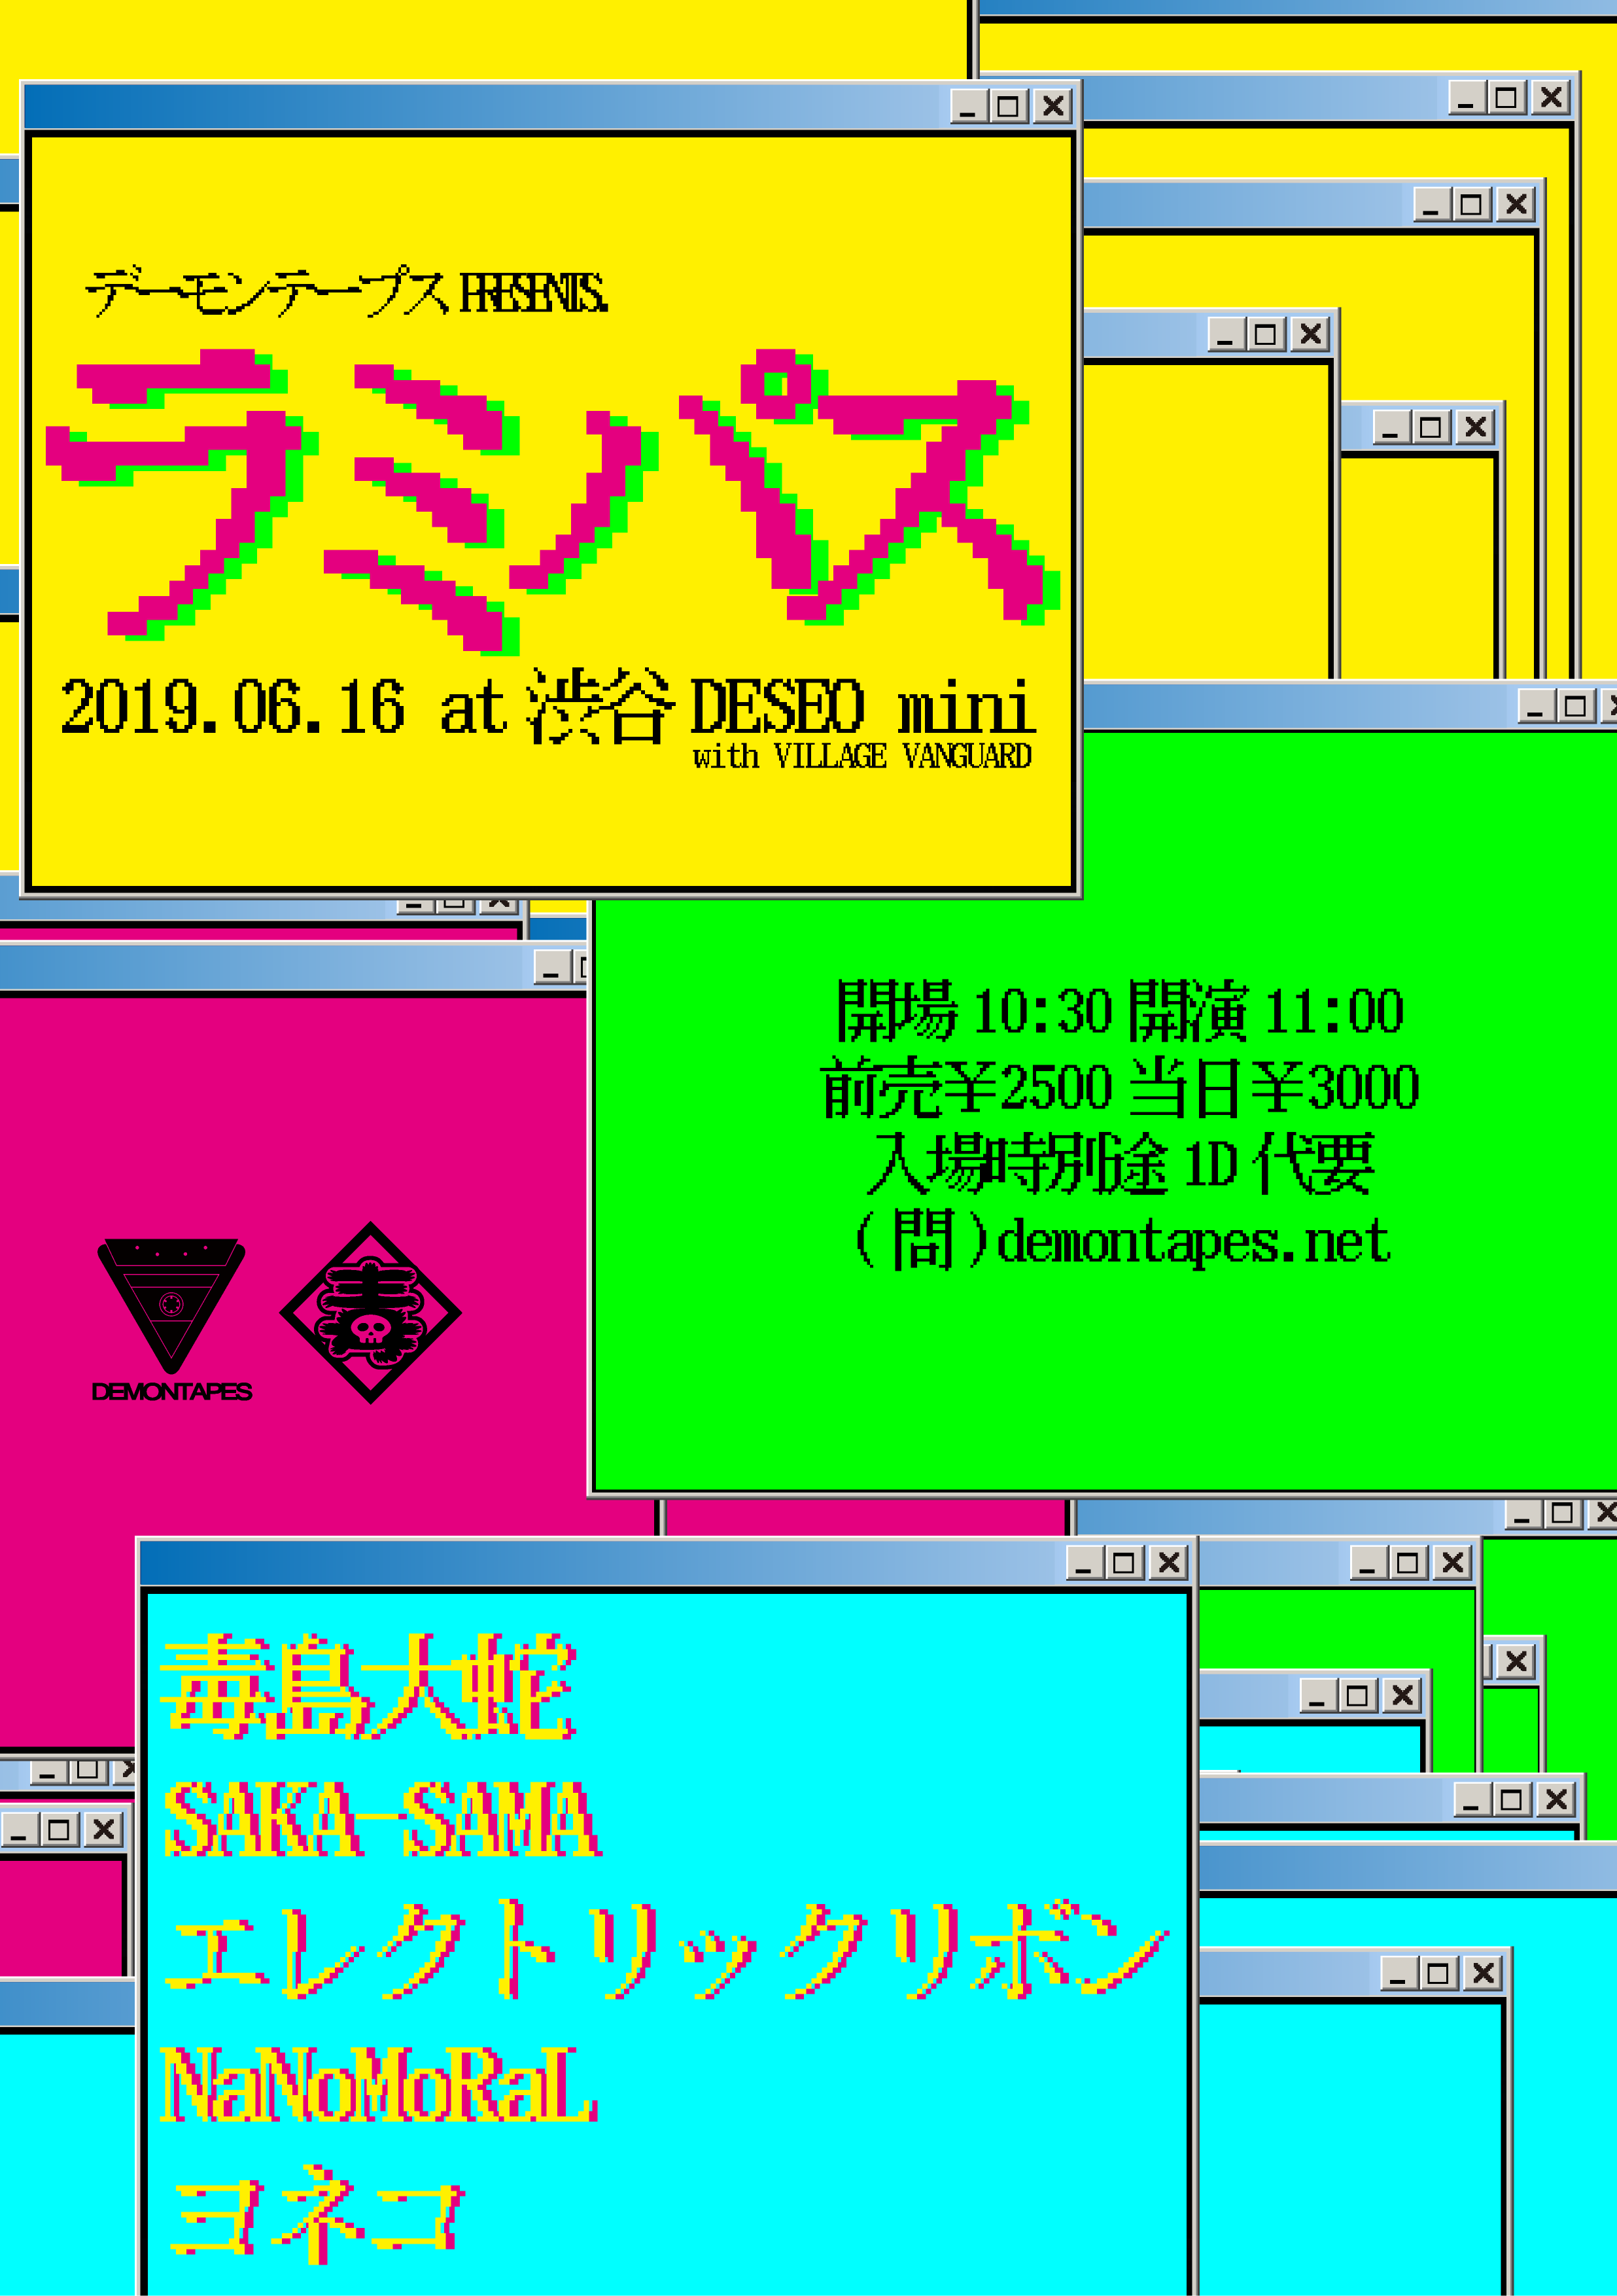 20190616.png